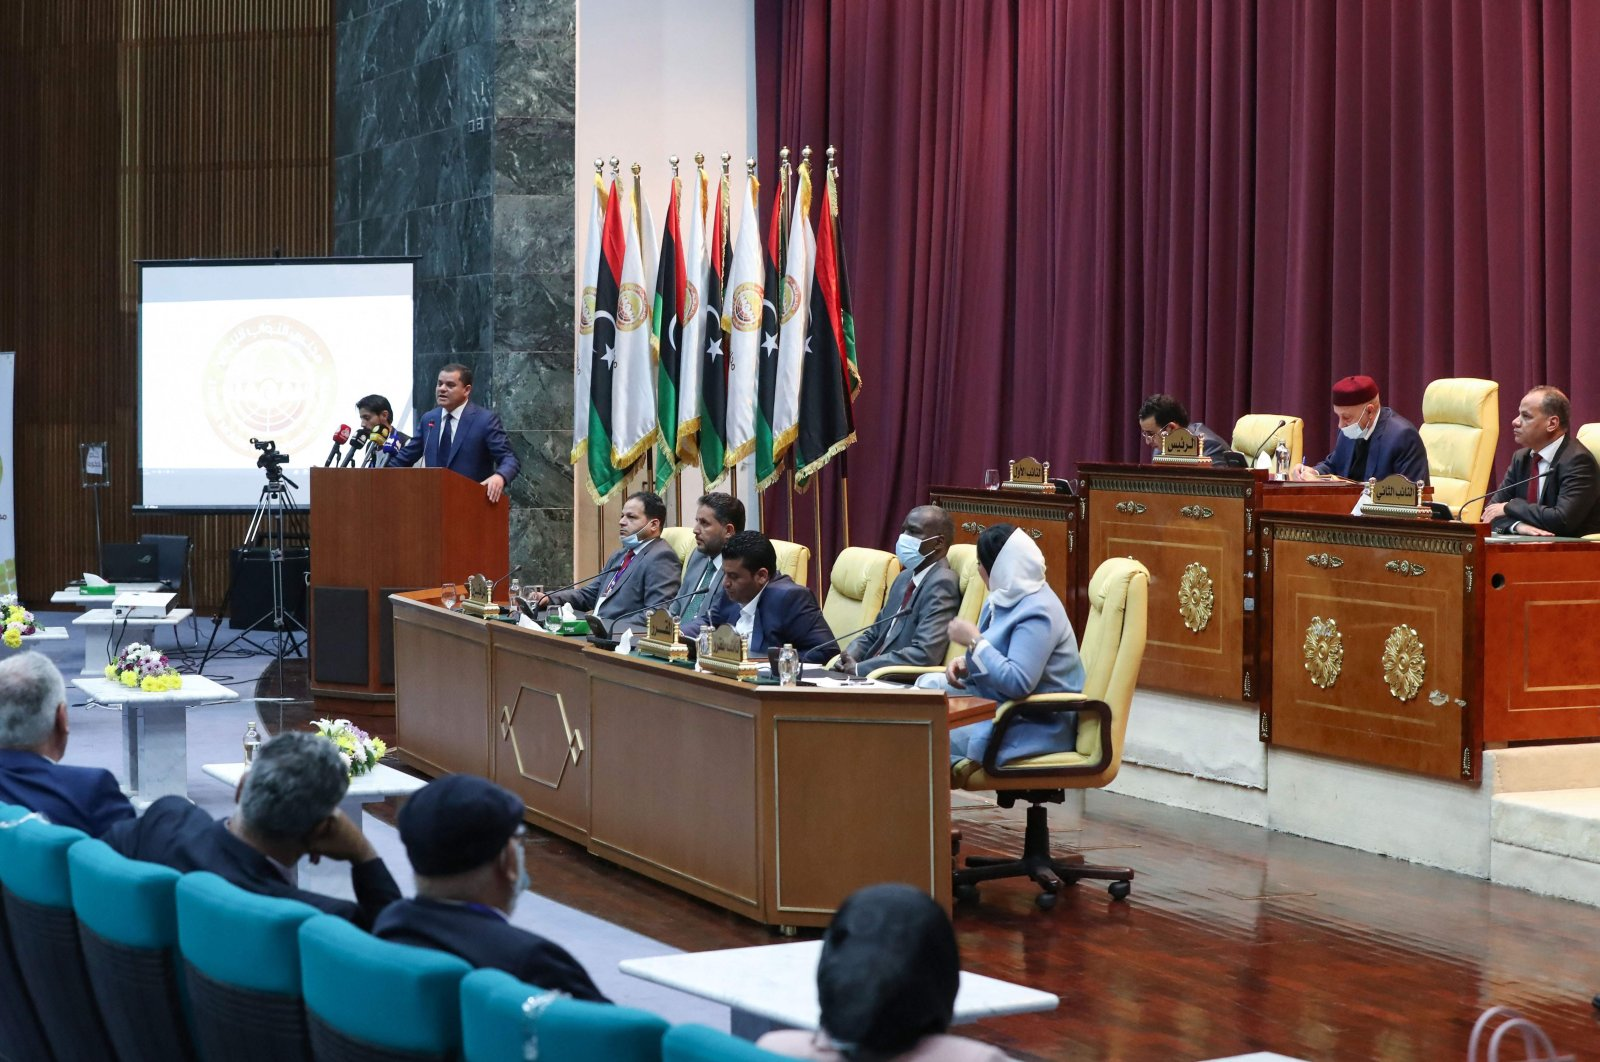 Libya's Prime Minister-designate Abdul Hamid Dbeibah addresses lawmakers during the first reunited parliamentarian session, in the coastal city of Sirte east of the capital, on March 9, 2021. (AFP Photo)